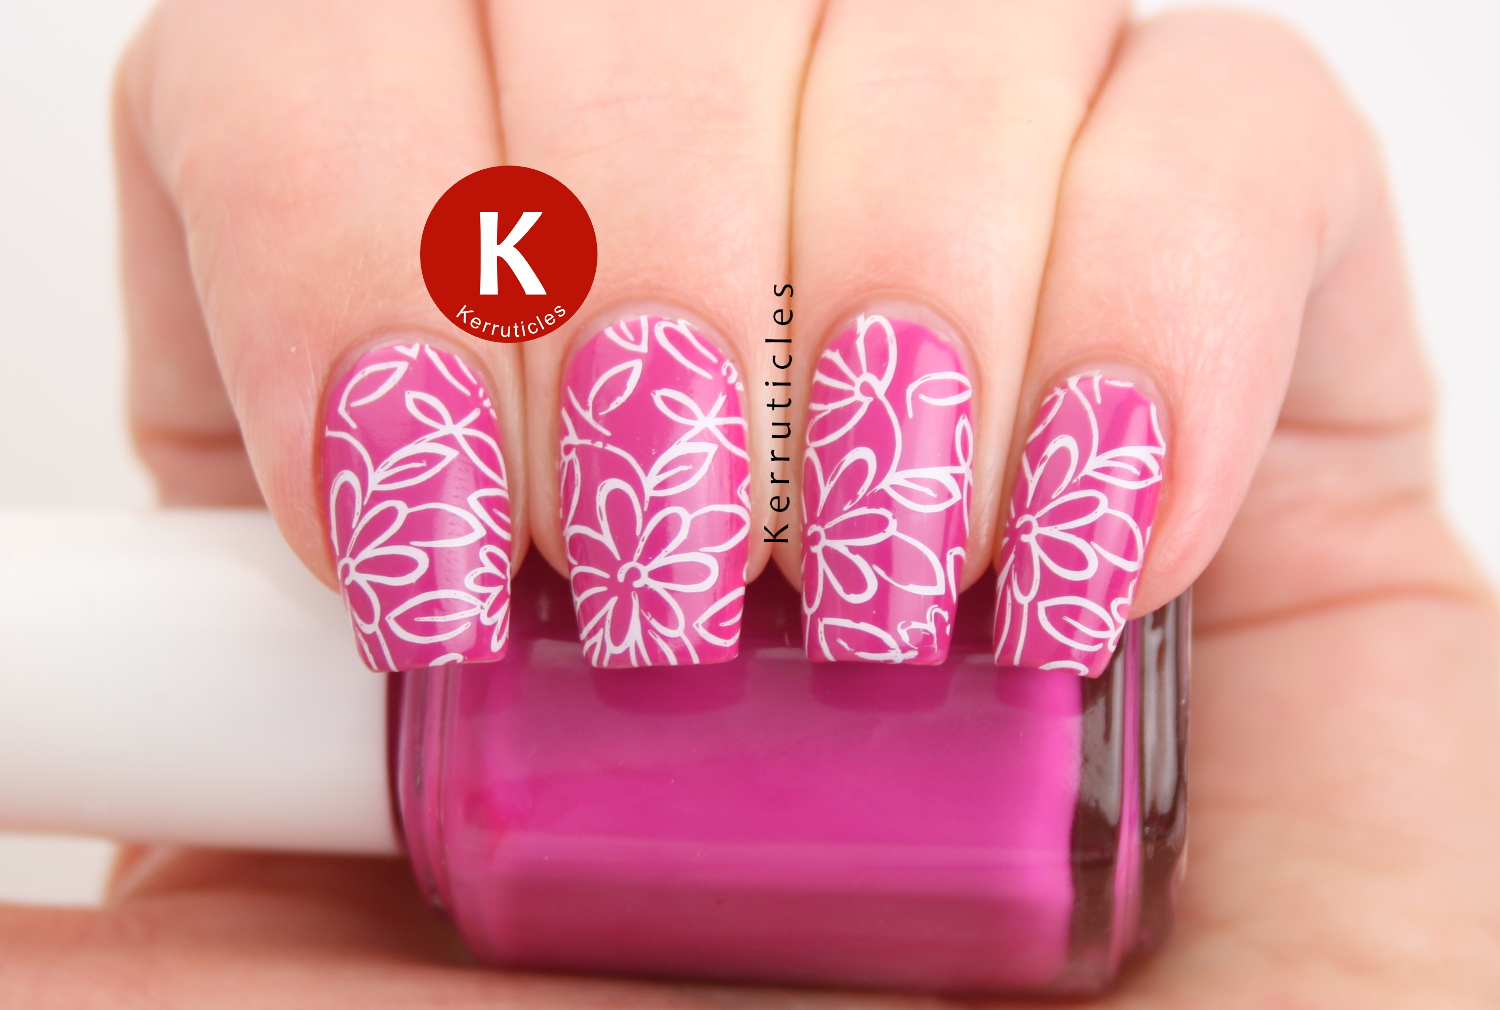 Pink Floral Nails Using Essie Coachabella Kerruticles